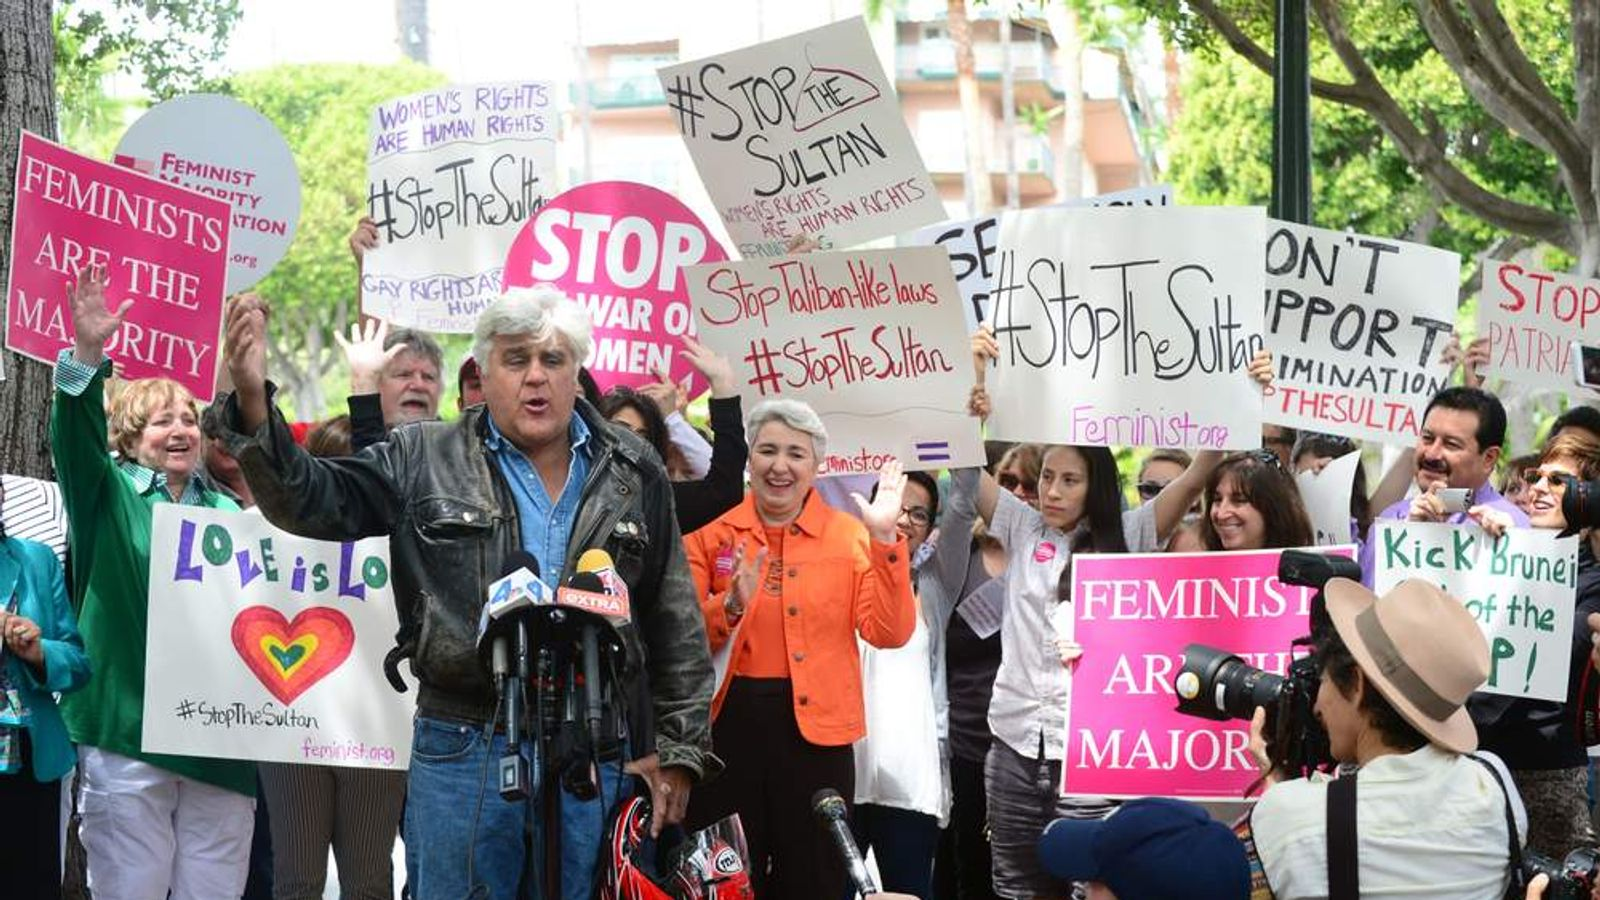 Jay Leno speaks at a gathering of Women's Rights and LGBT groups protesting outside the Beverly Hills Hotel